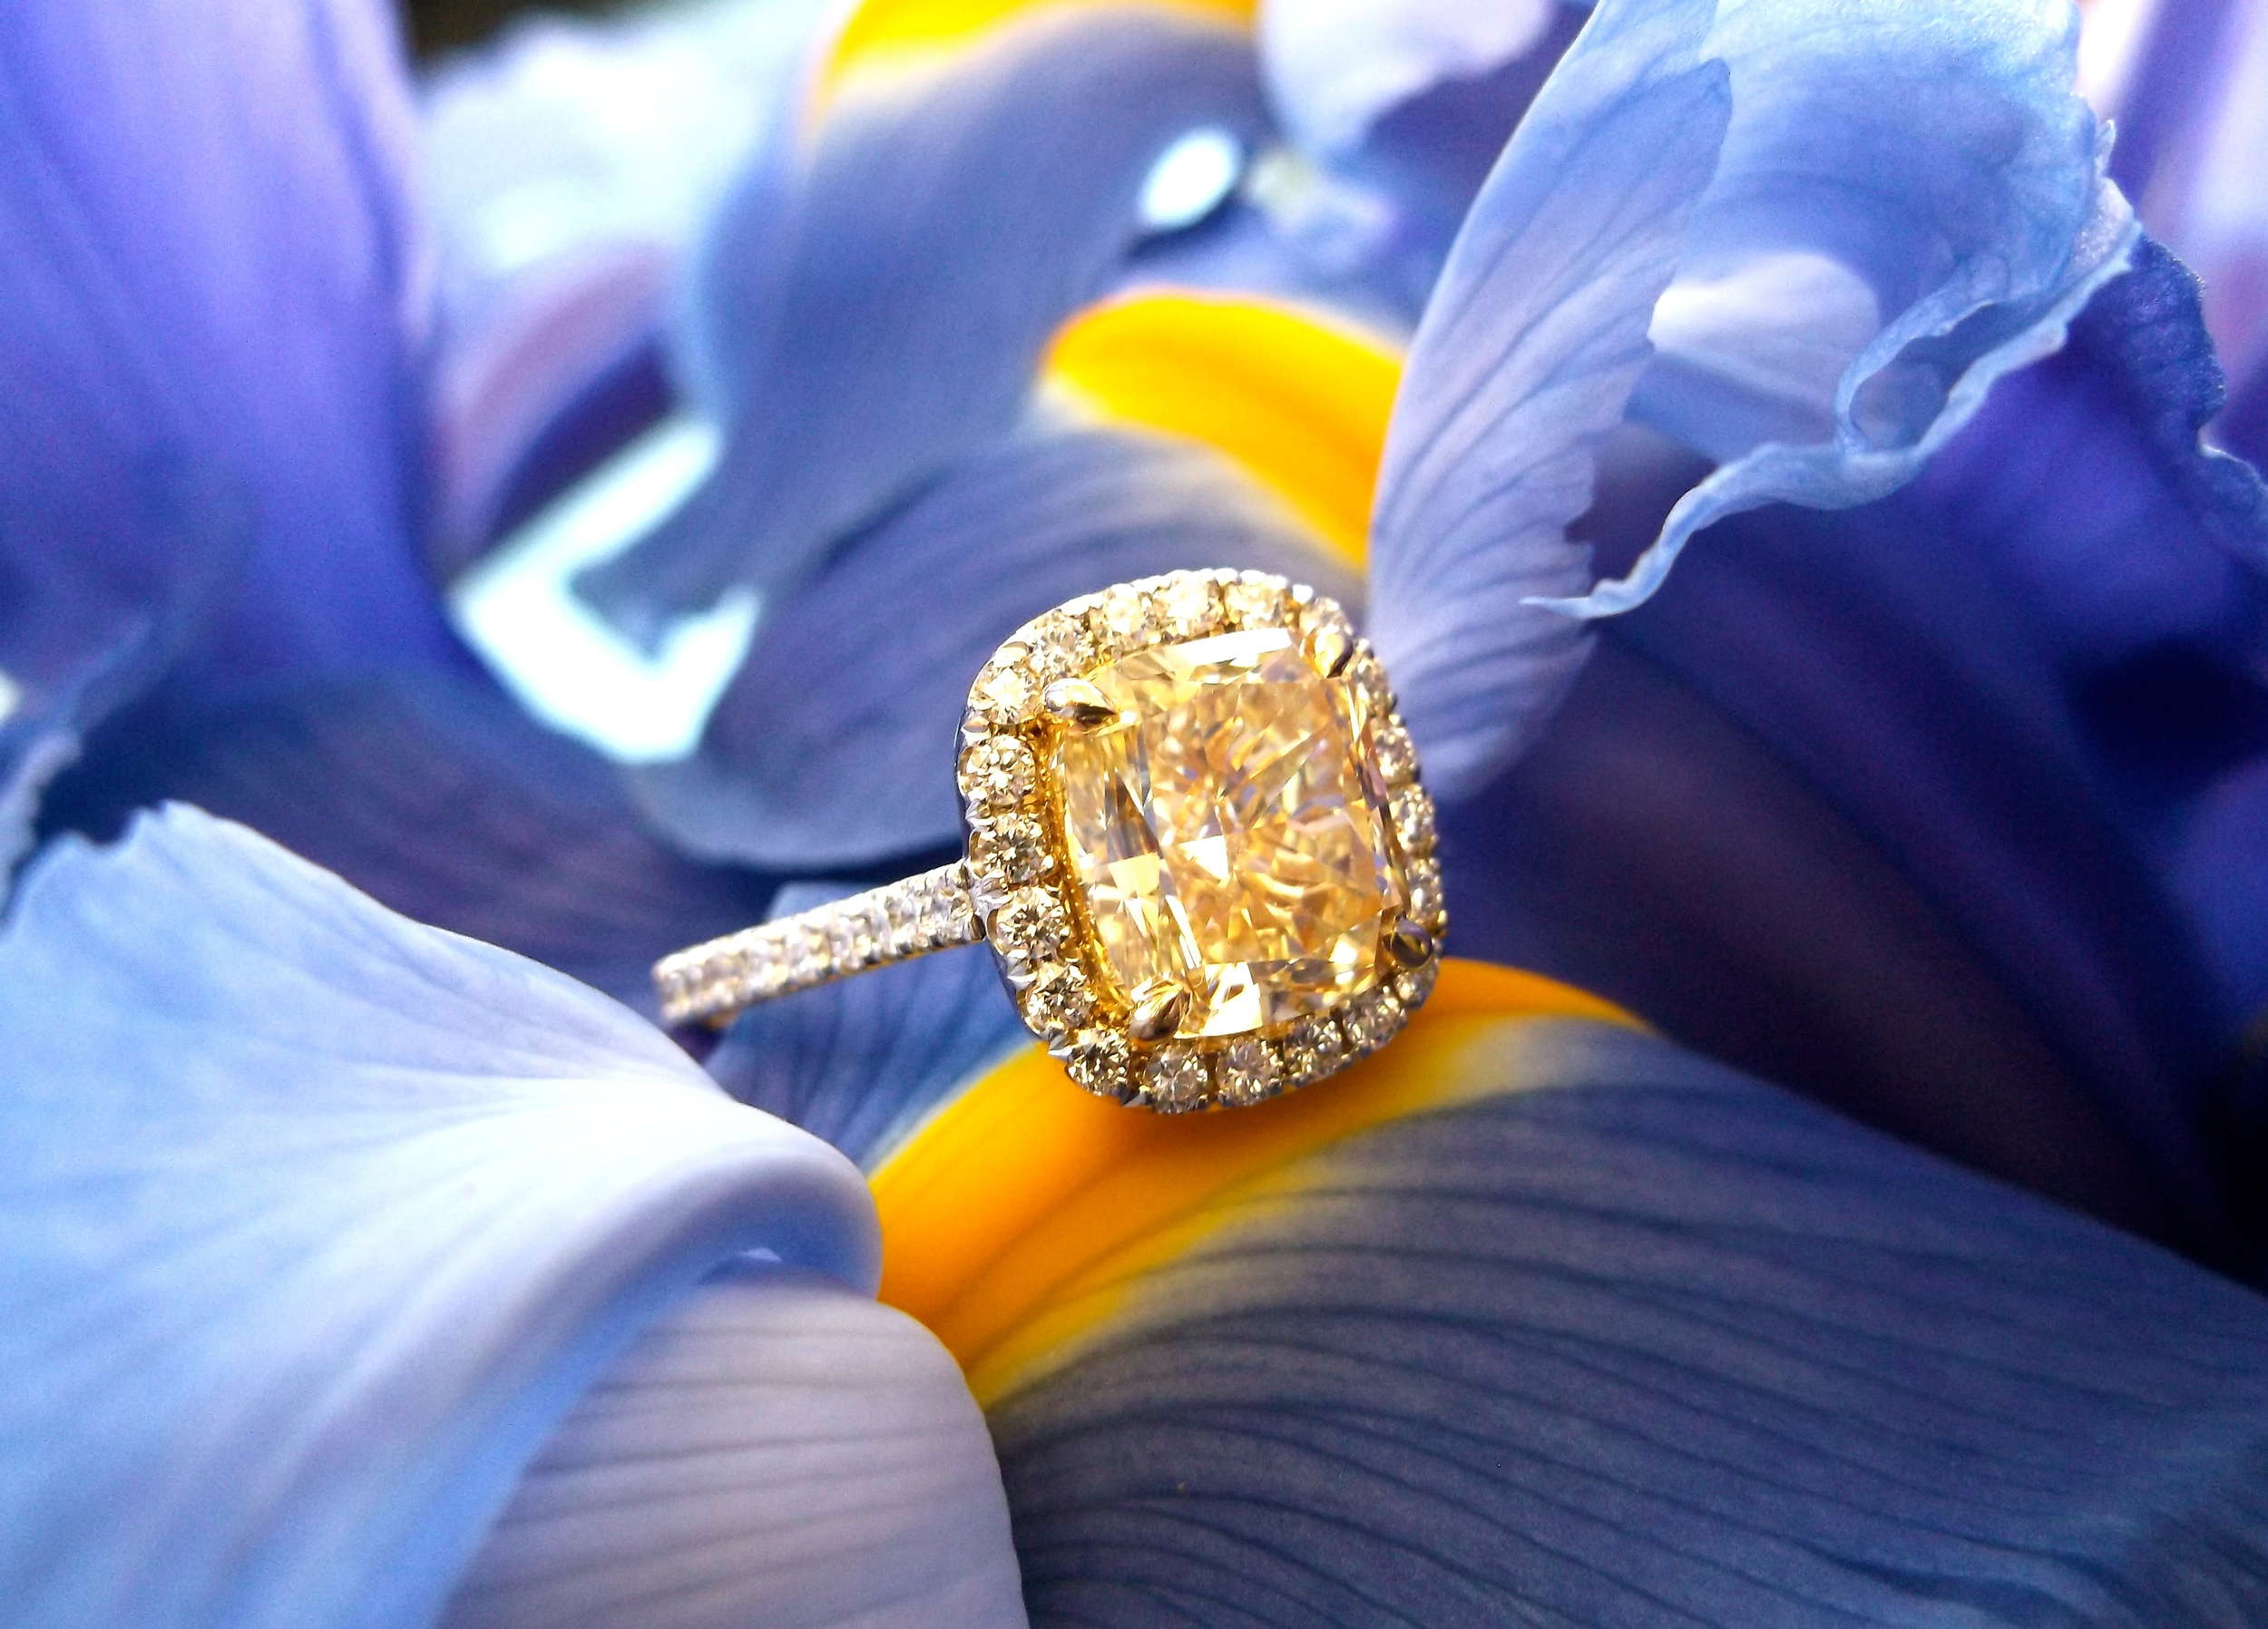 SOLD - Vibrant 2.70 carat fancy yellow diamond set in a dainty diamond halo in 18K white gold.